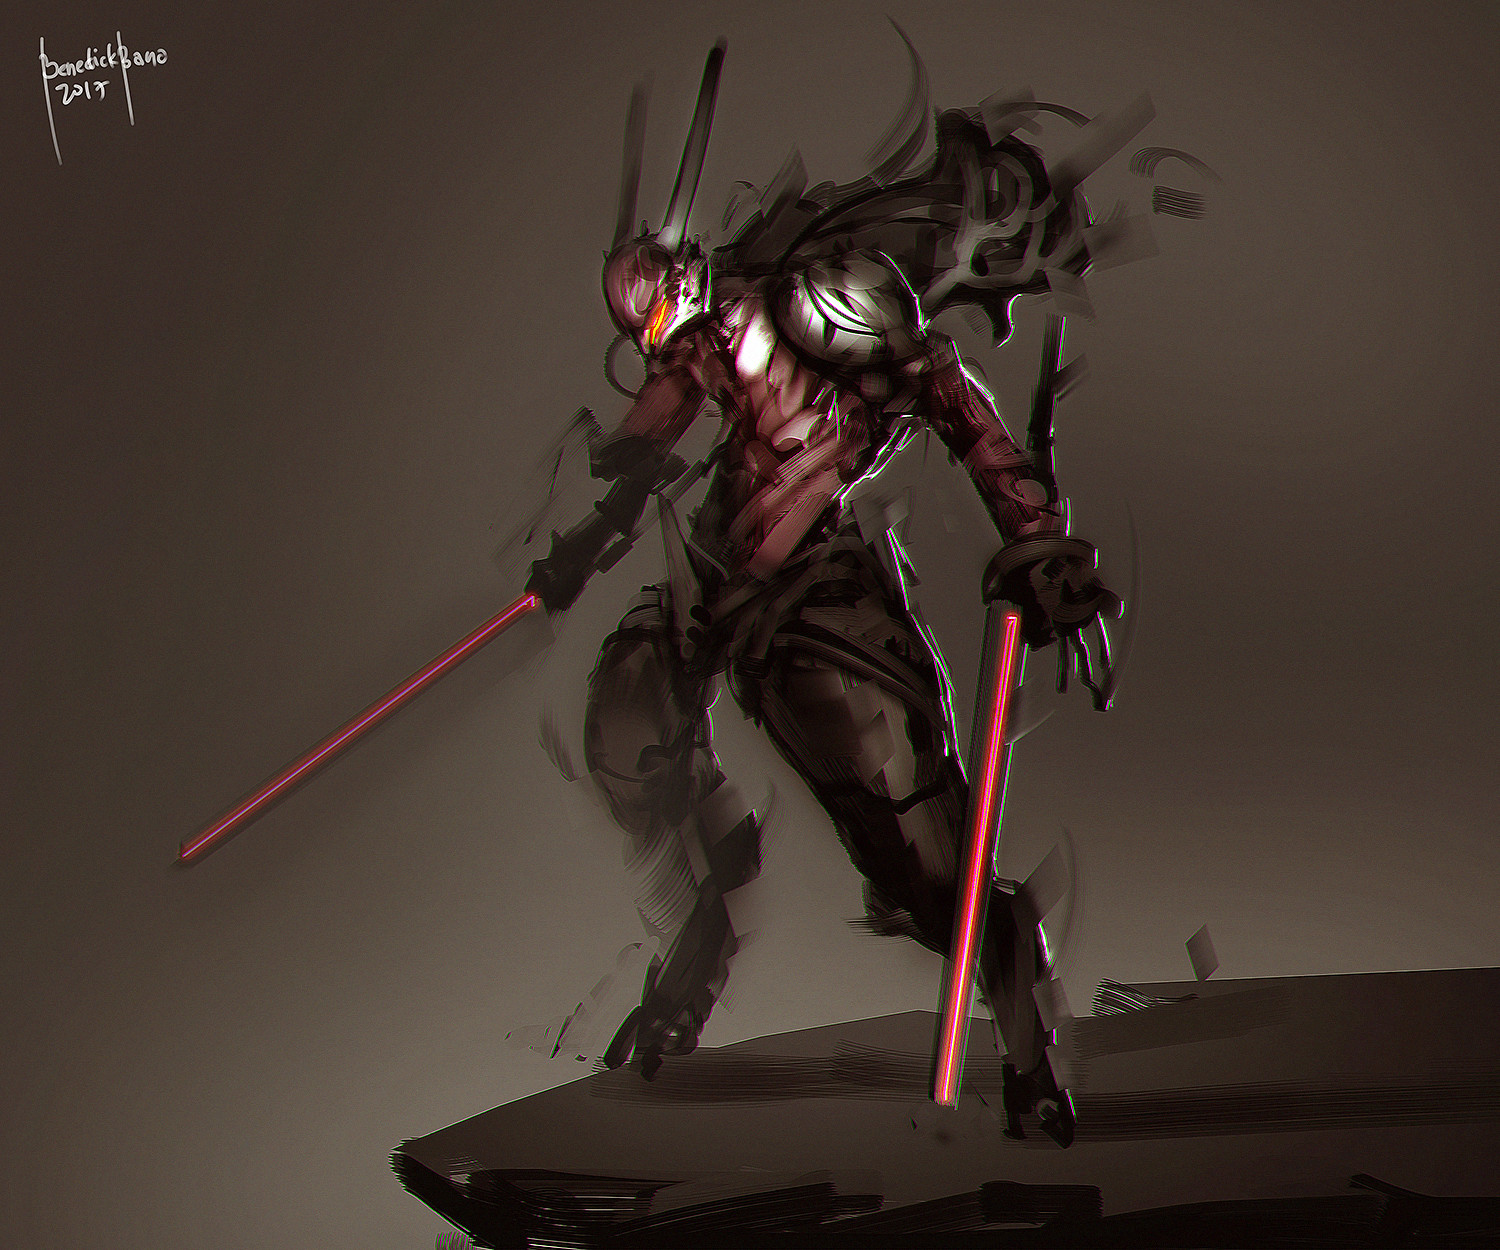 Benedick bana wabbit shaded coloring2 lores